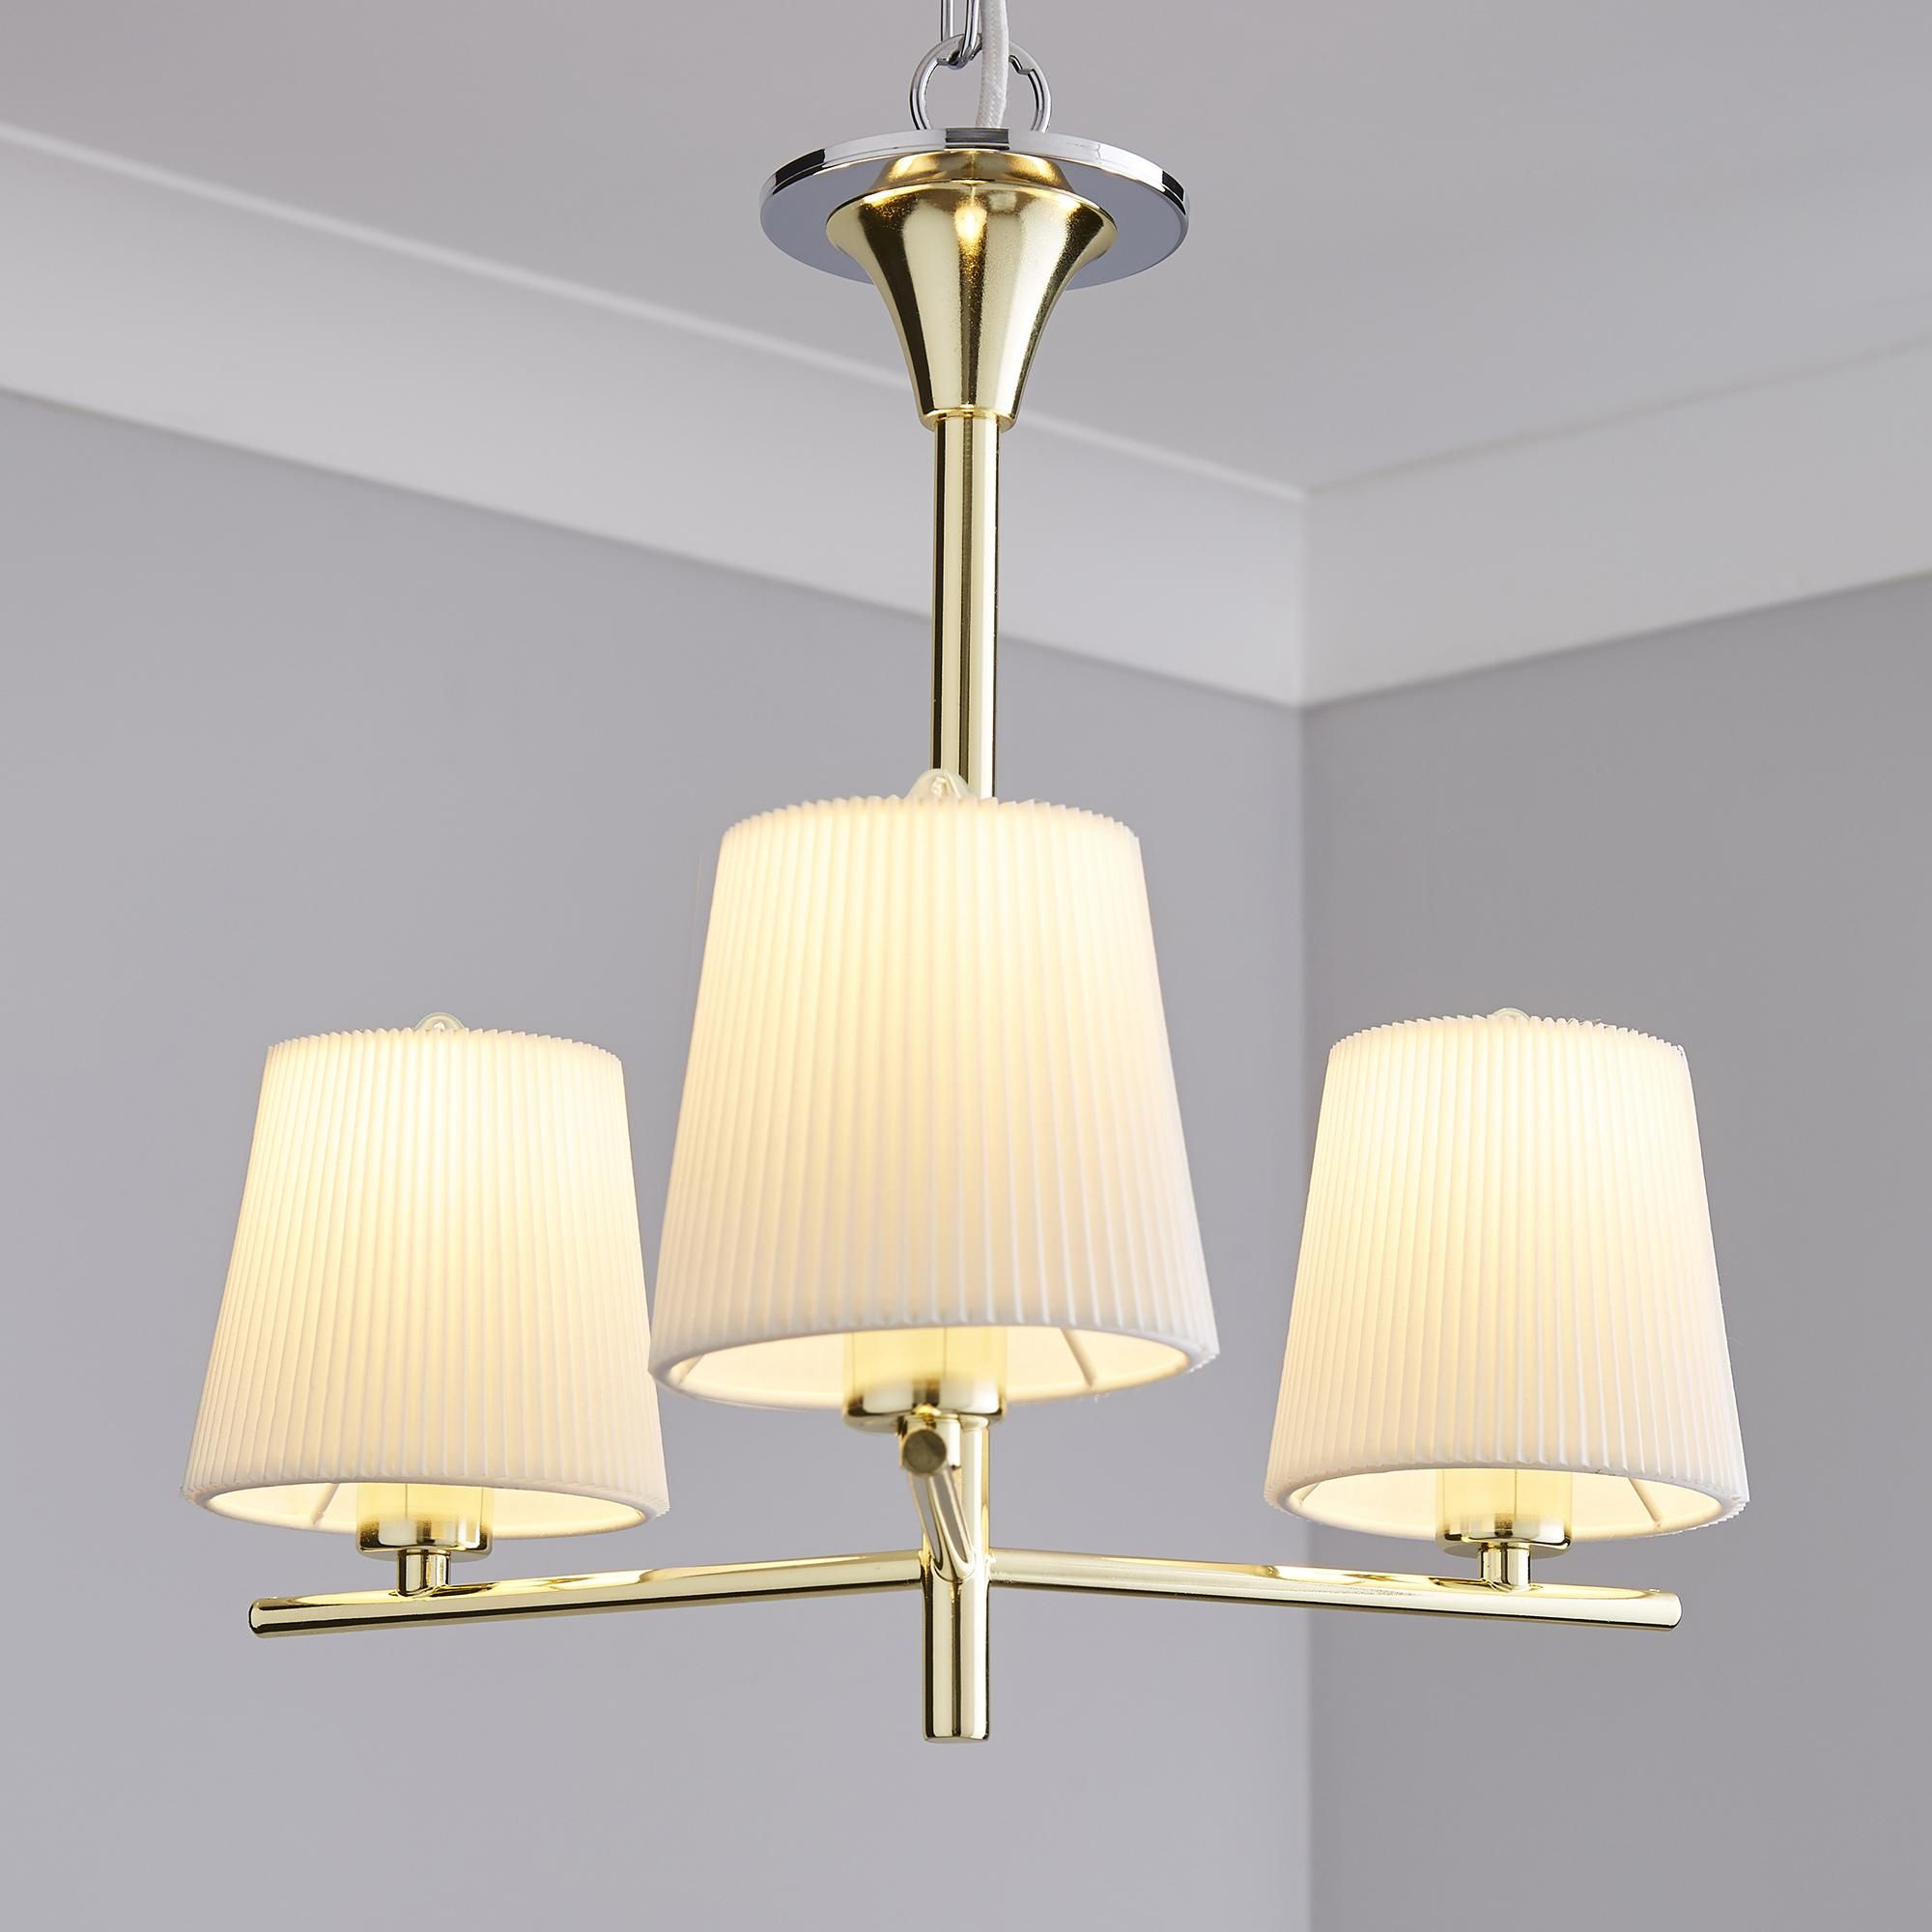 Washington Gold 3 Light Ceiling Fitting Ceiling Lights Ceiling